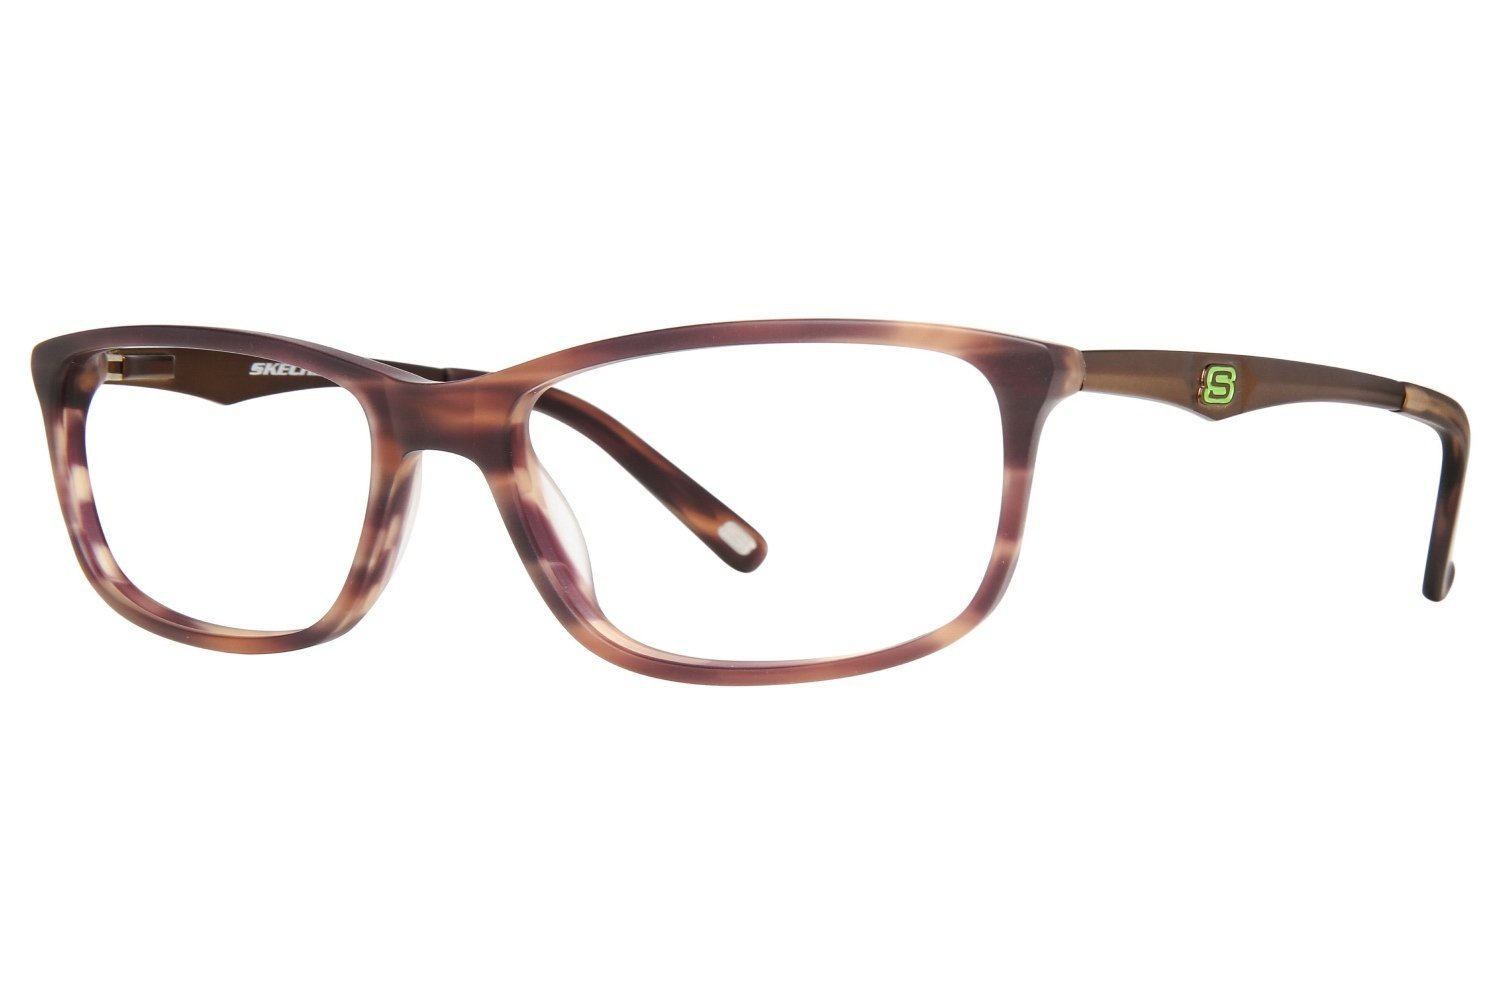 Buy Skechers SK 3128 Mens Eyeglass Frames in Cheap Price on Alibaba.com